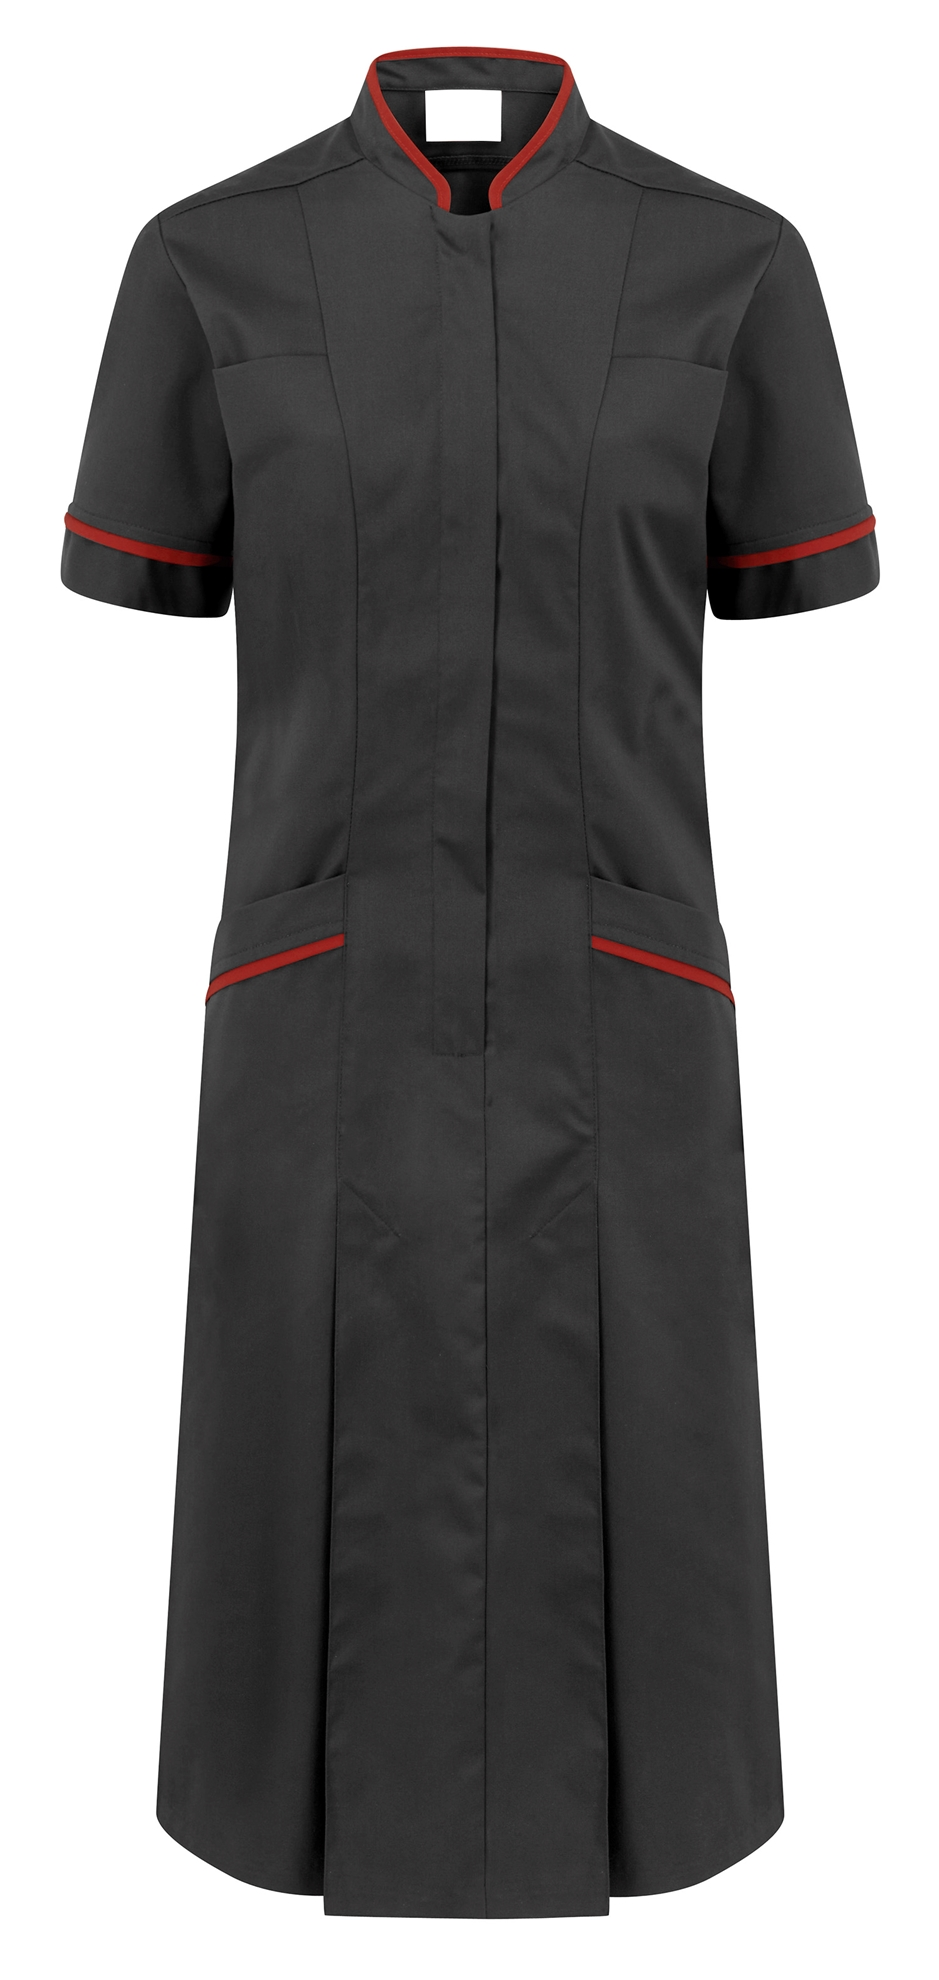 Picture of Professional Dress - Charcoal/Red